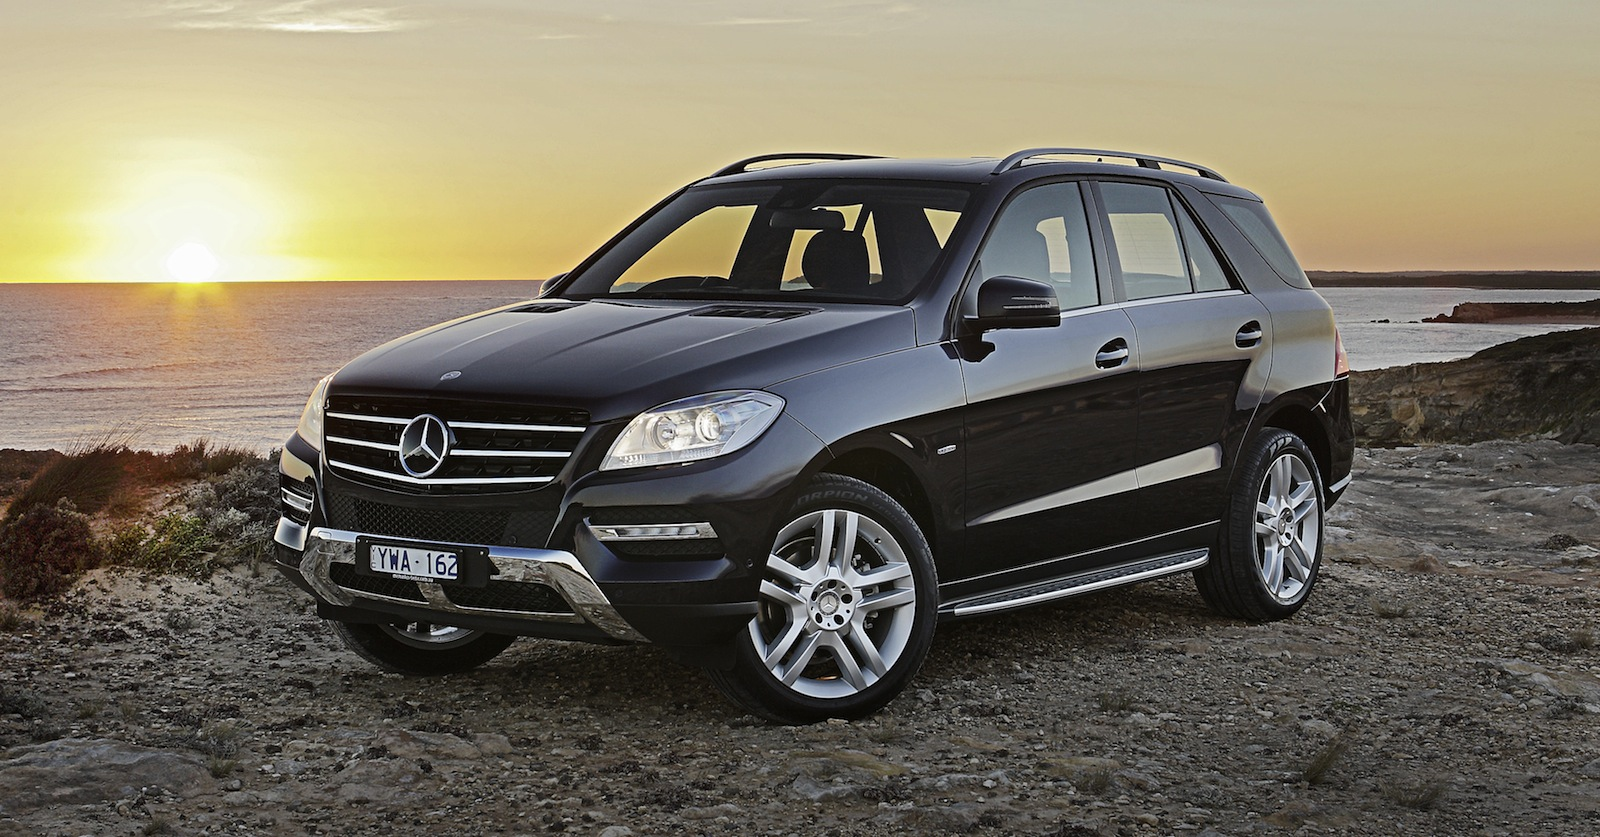 Mercedes benz ml 250 photos 13 on better parts ltd for How much is a new mercedes benz